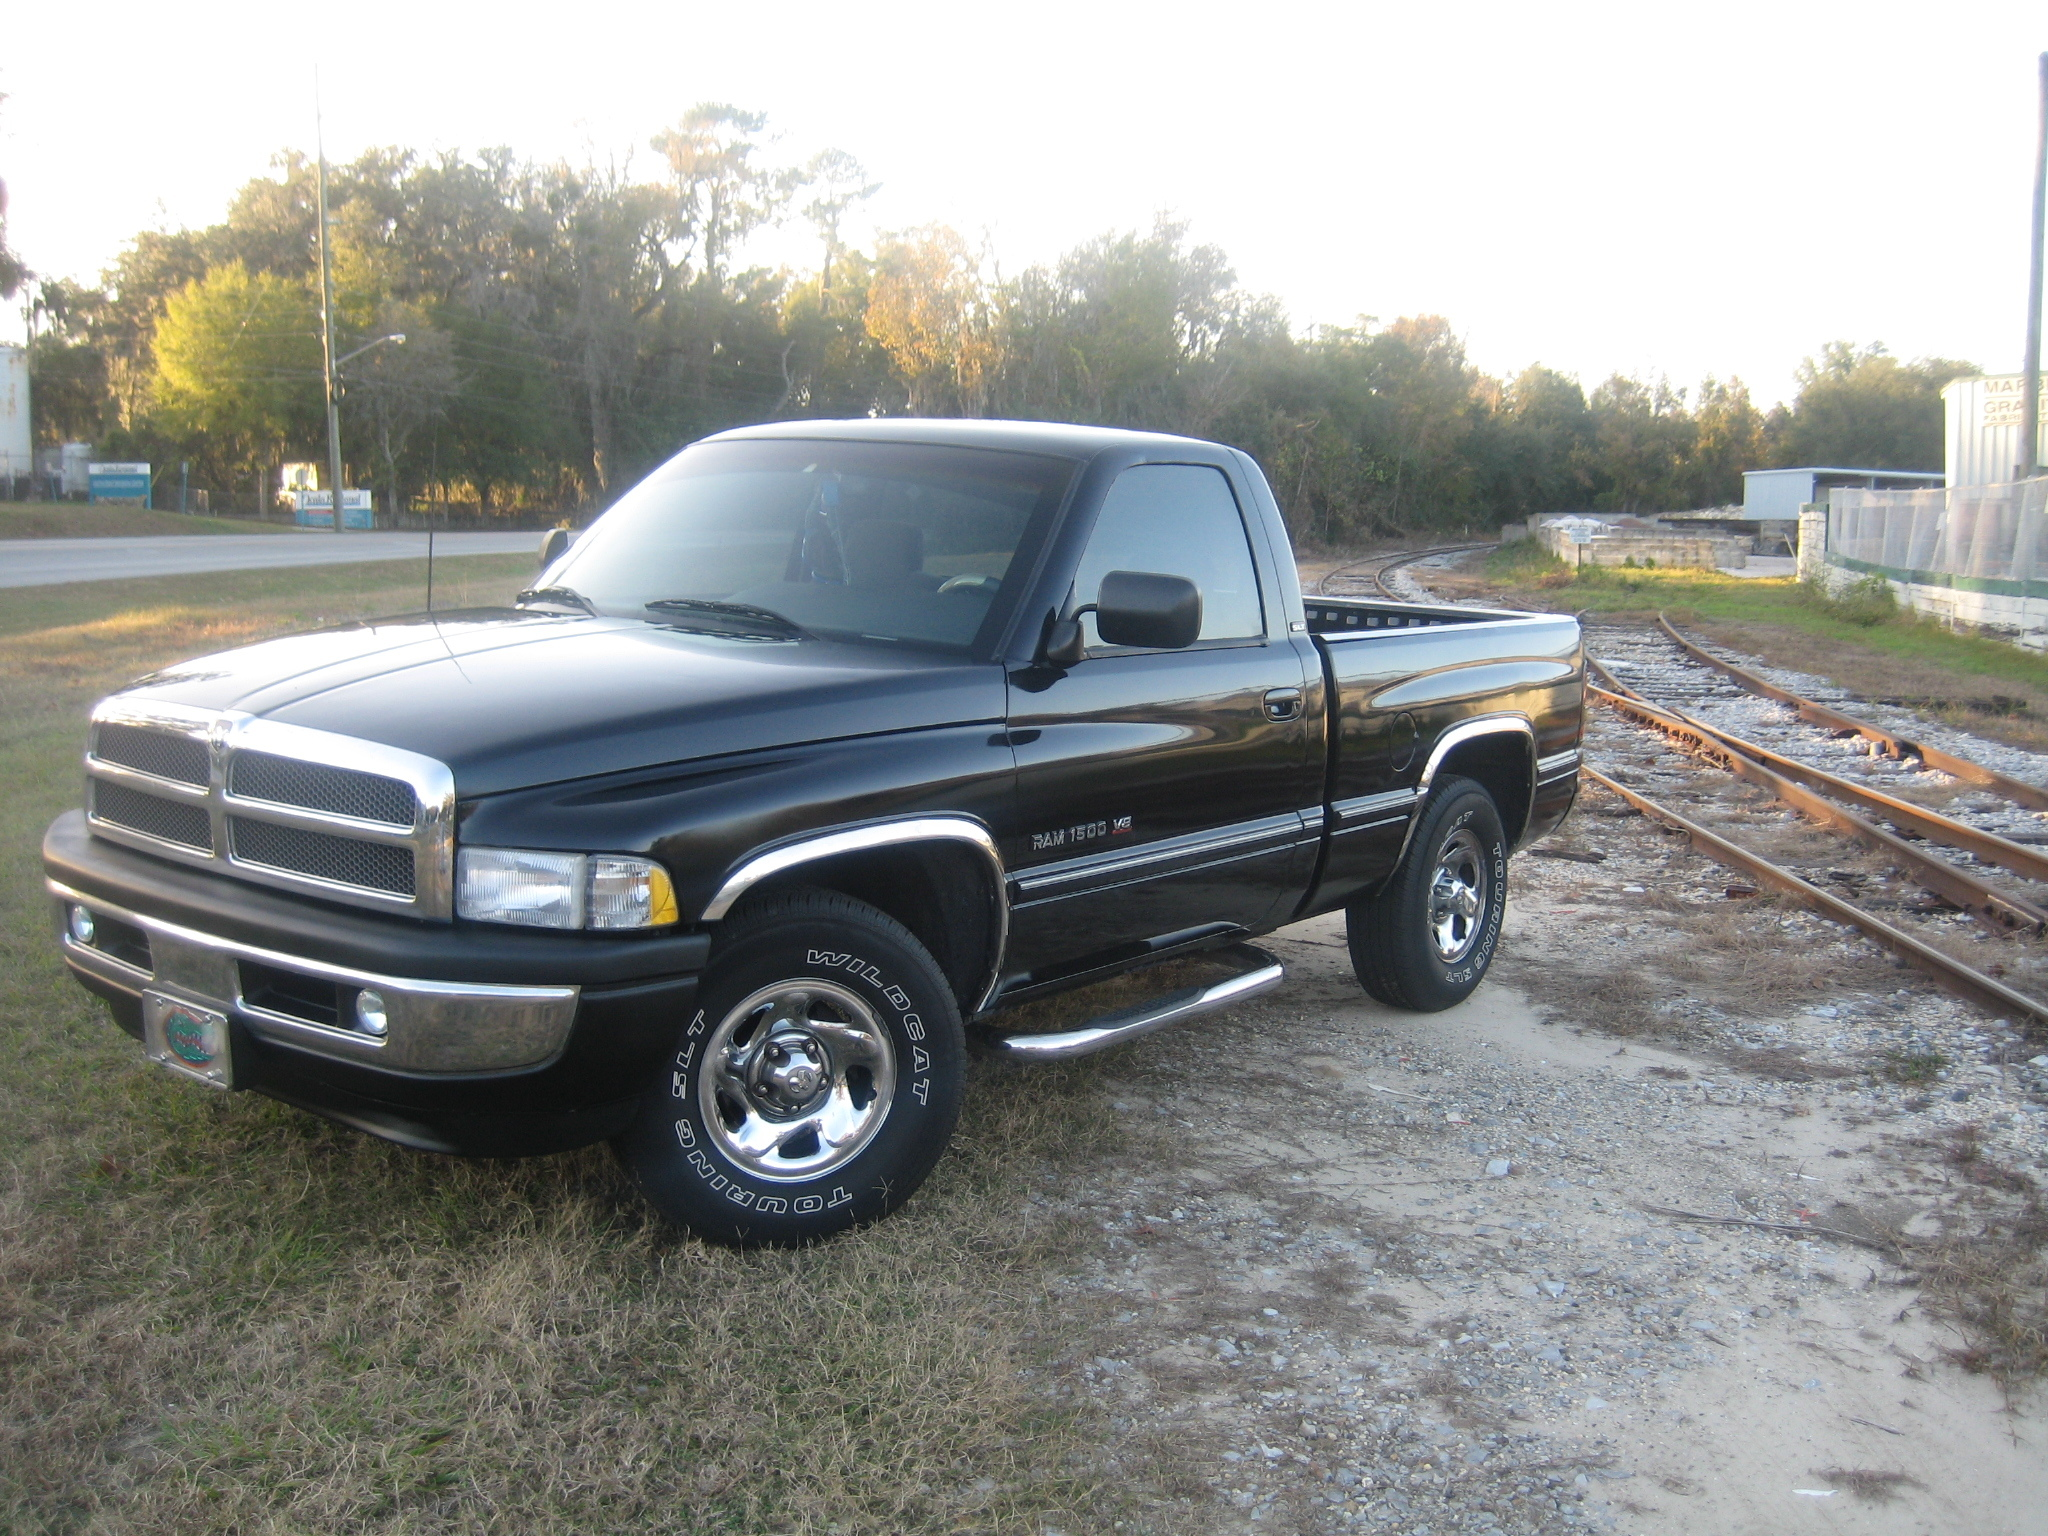 strawz1 1995 dodge ram 1500 regular cab specs photos modification info at cardomain. Black Bedroom Furniture Sets. Home Design Ideas